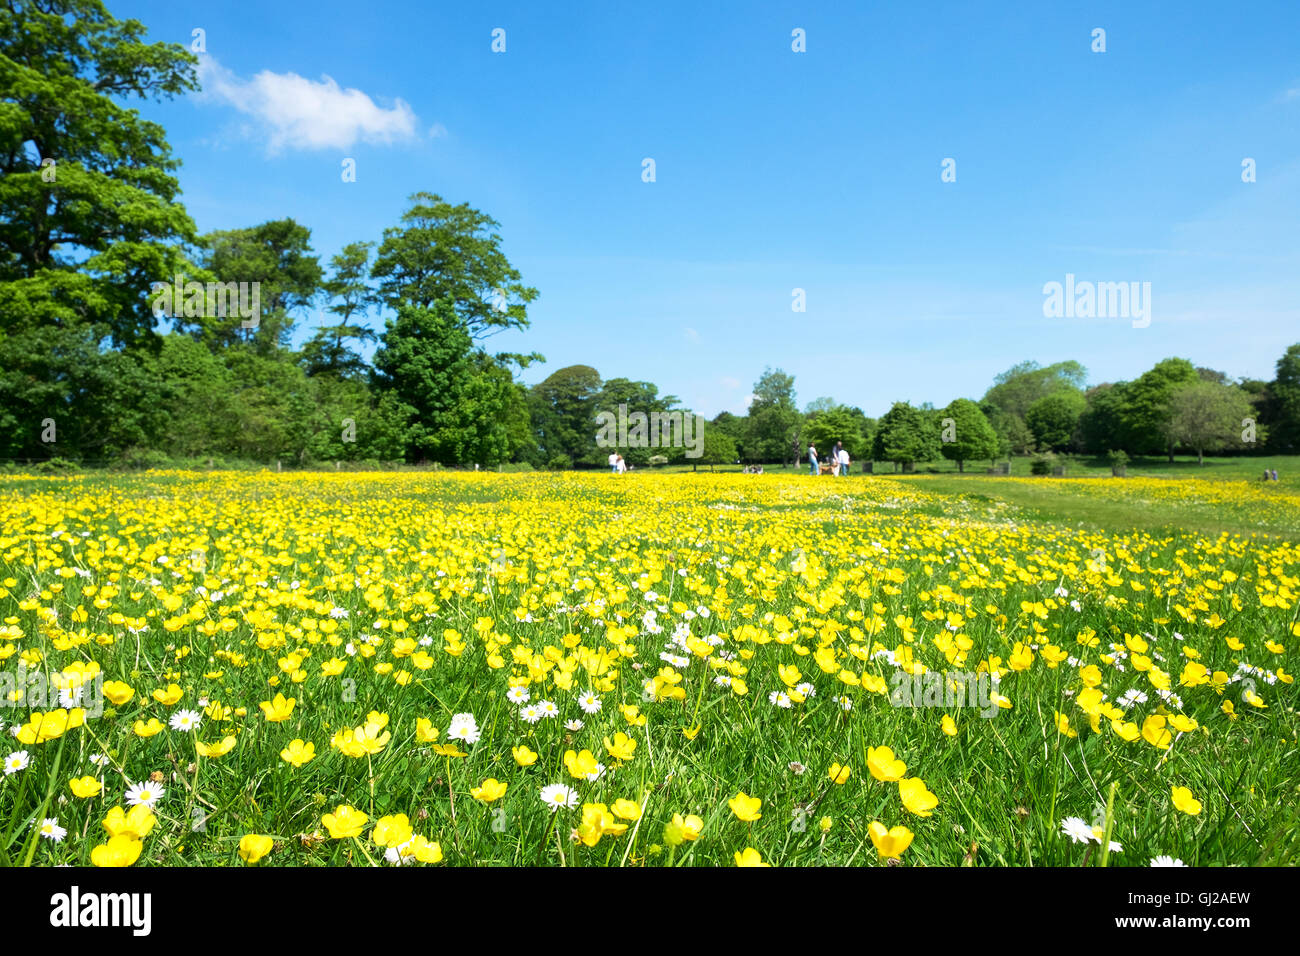 A park meadow full of flowering buttercups and daisies - Stock Image